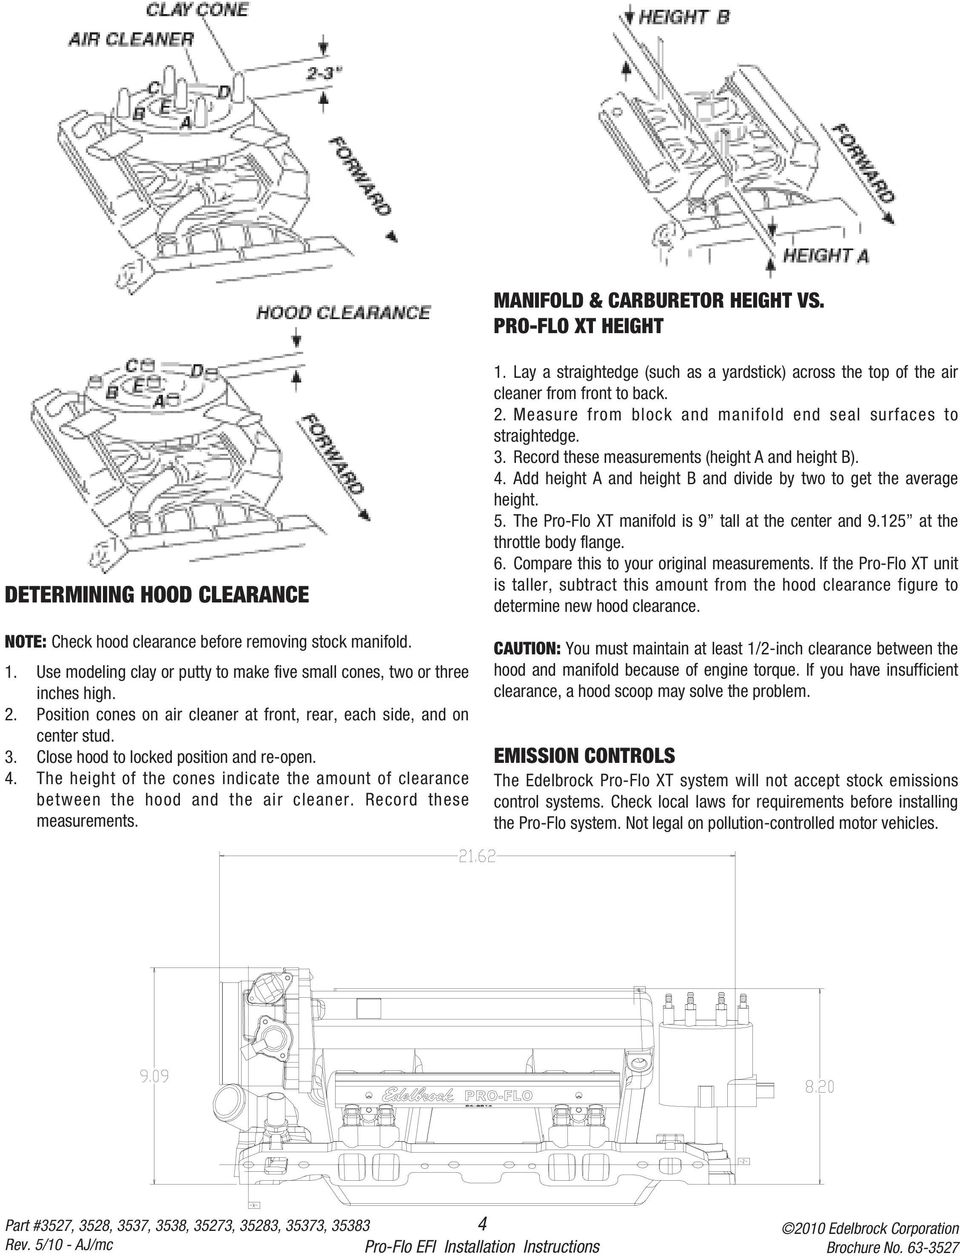 installation instructions pdf close hood to locked position and re open 4 the height of the